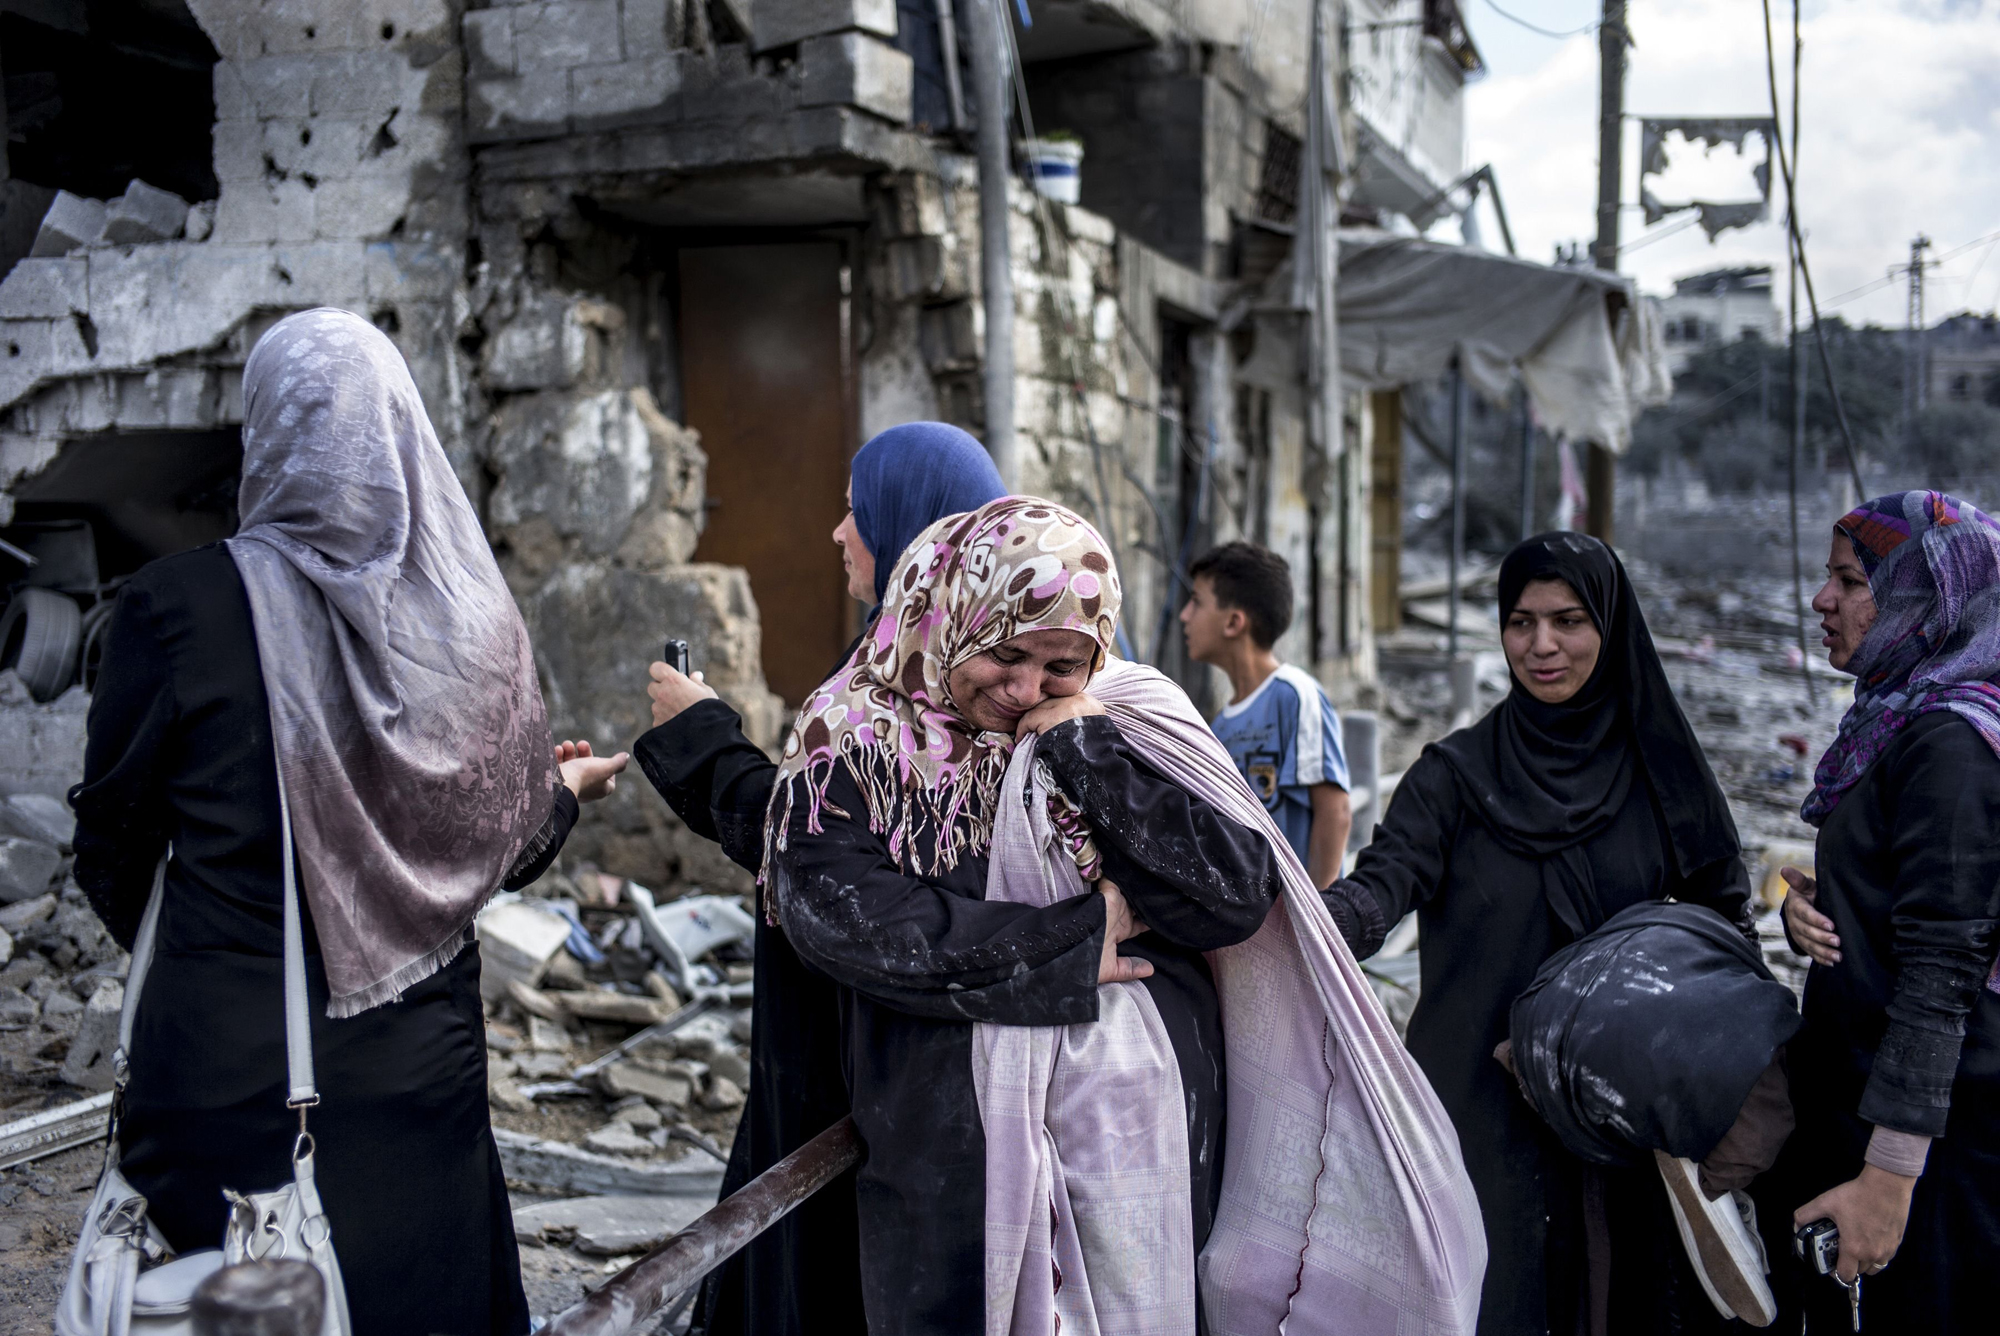 Palestinian women react amid the destruction in the northern district of Beit Hanoun in the Gaza Strip during an humanitarian truce on July 26, 2014.